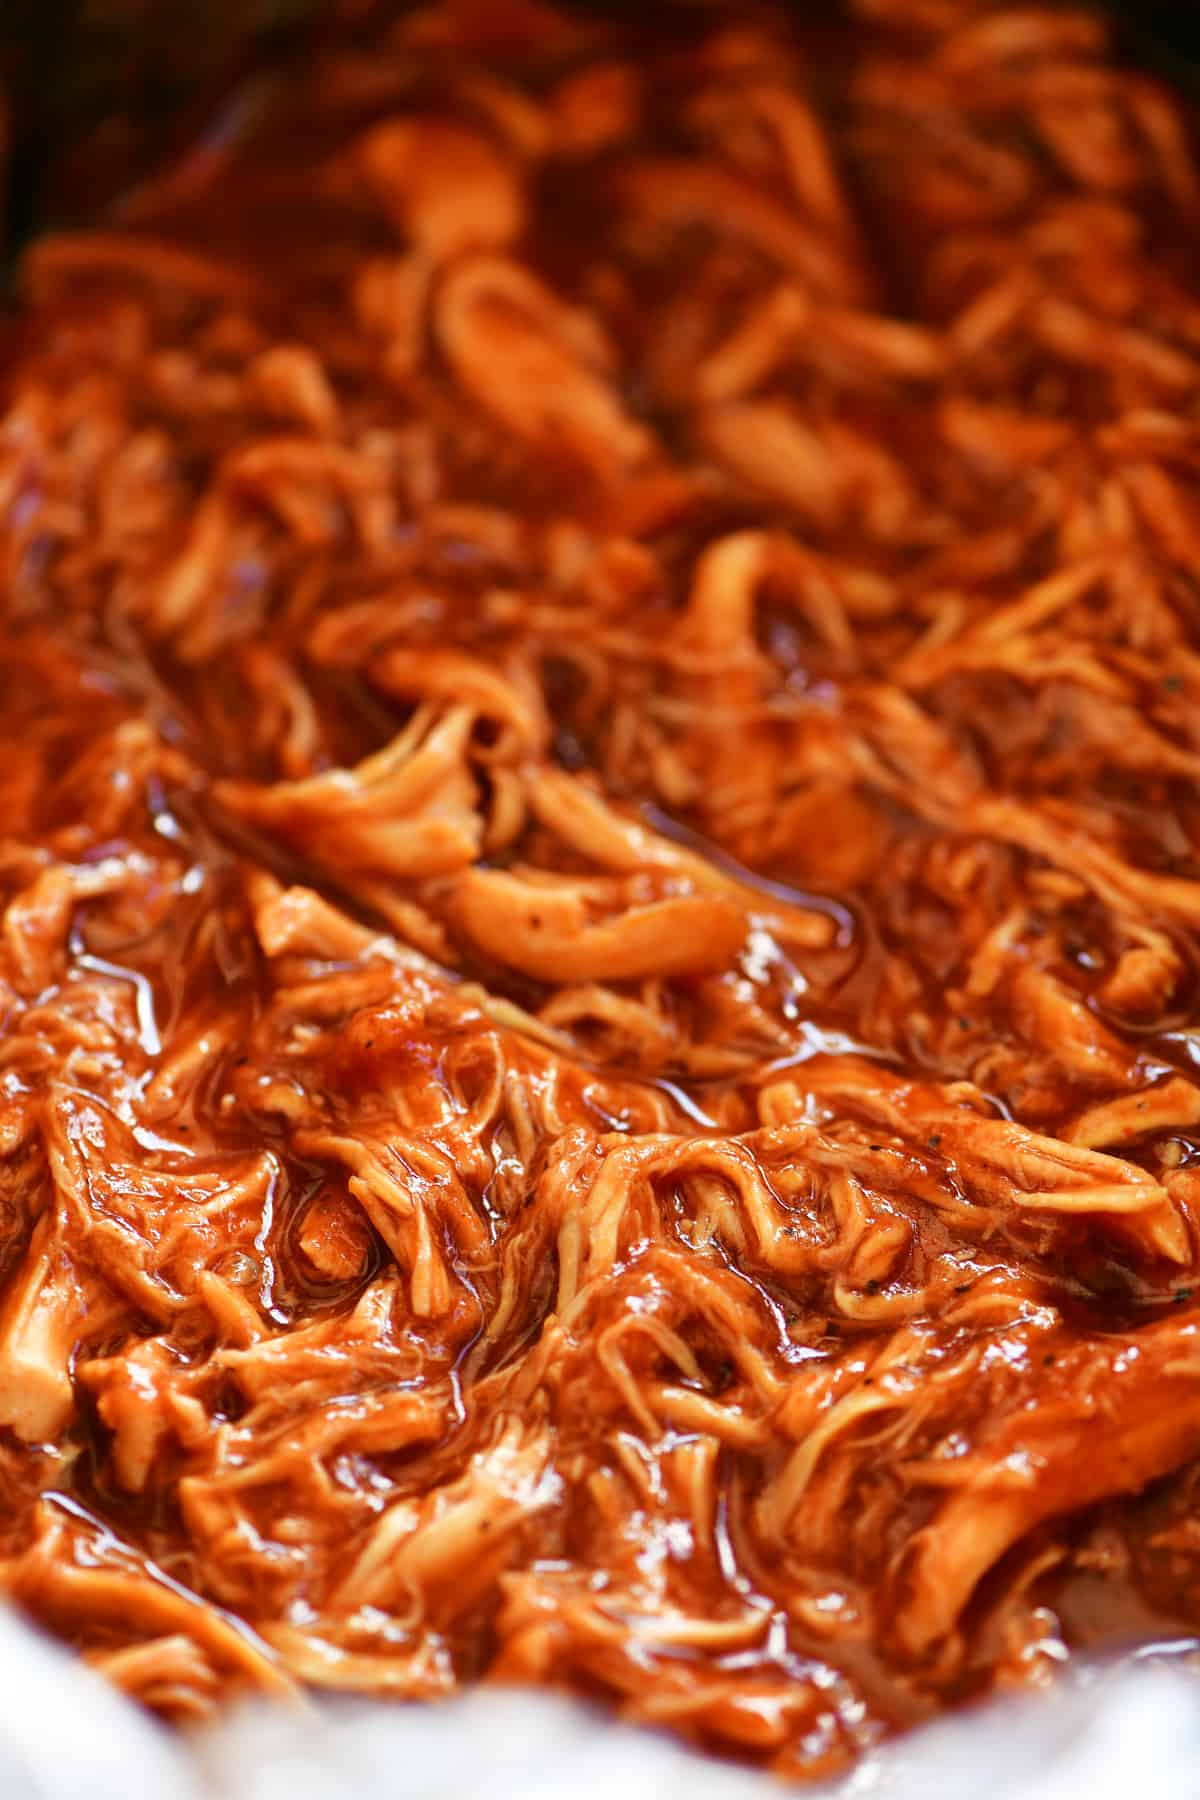 shredded barbecue chicken